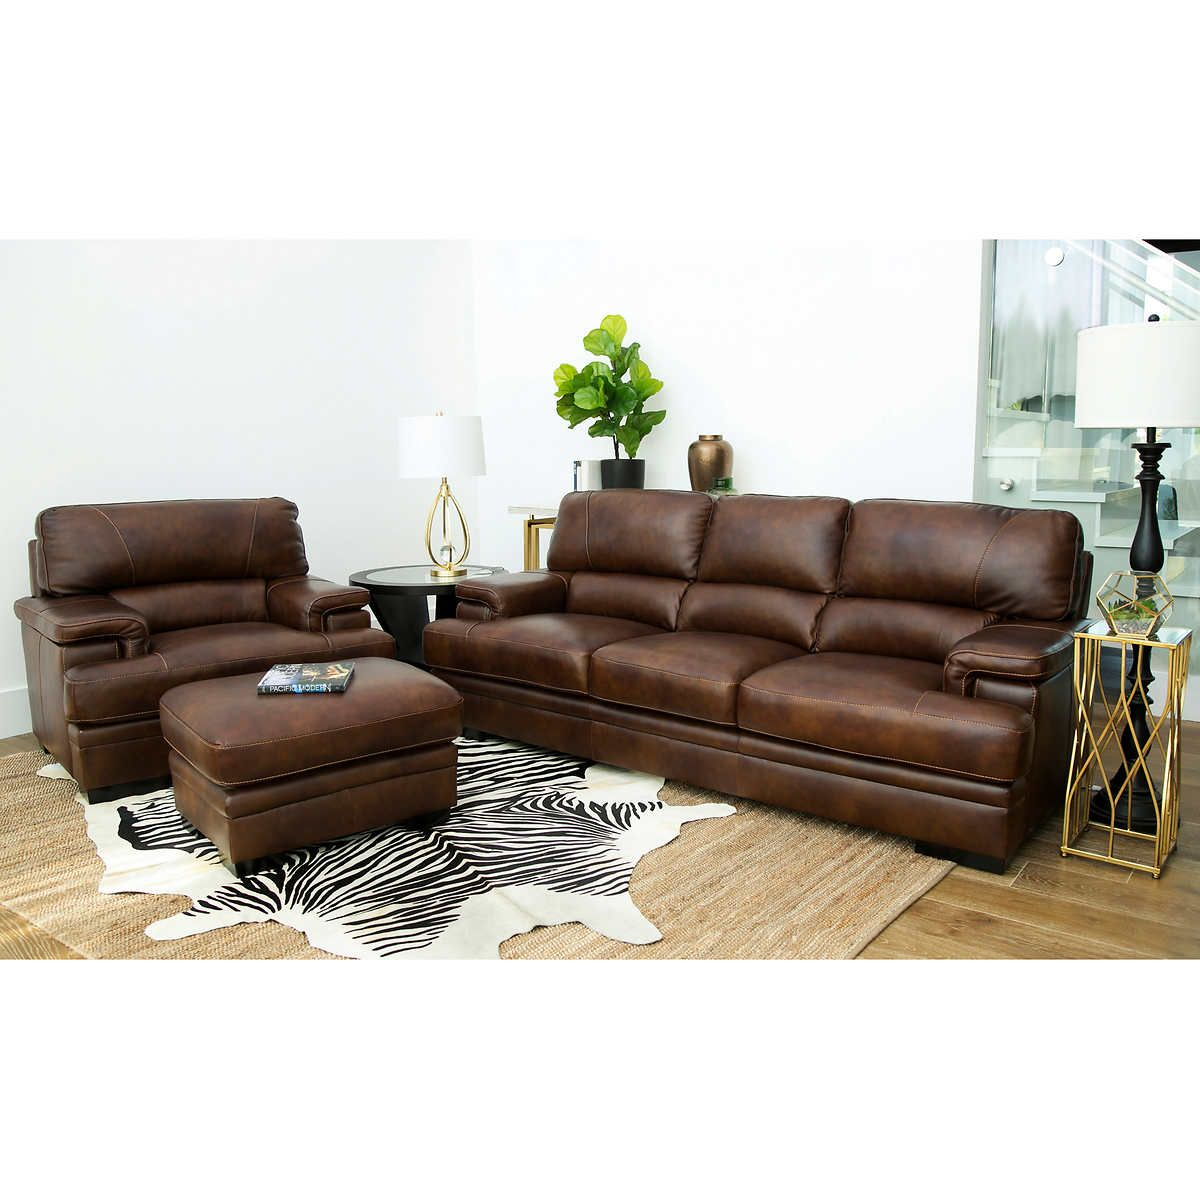 Image by Jeska Green on Home Sweet Home Leather sofa and